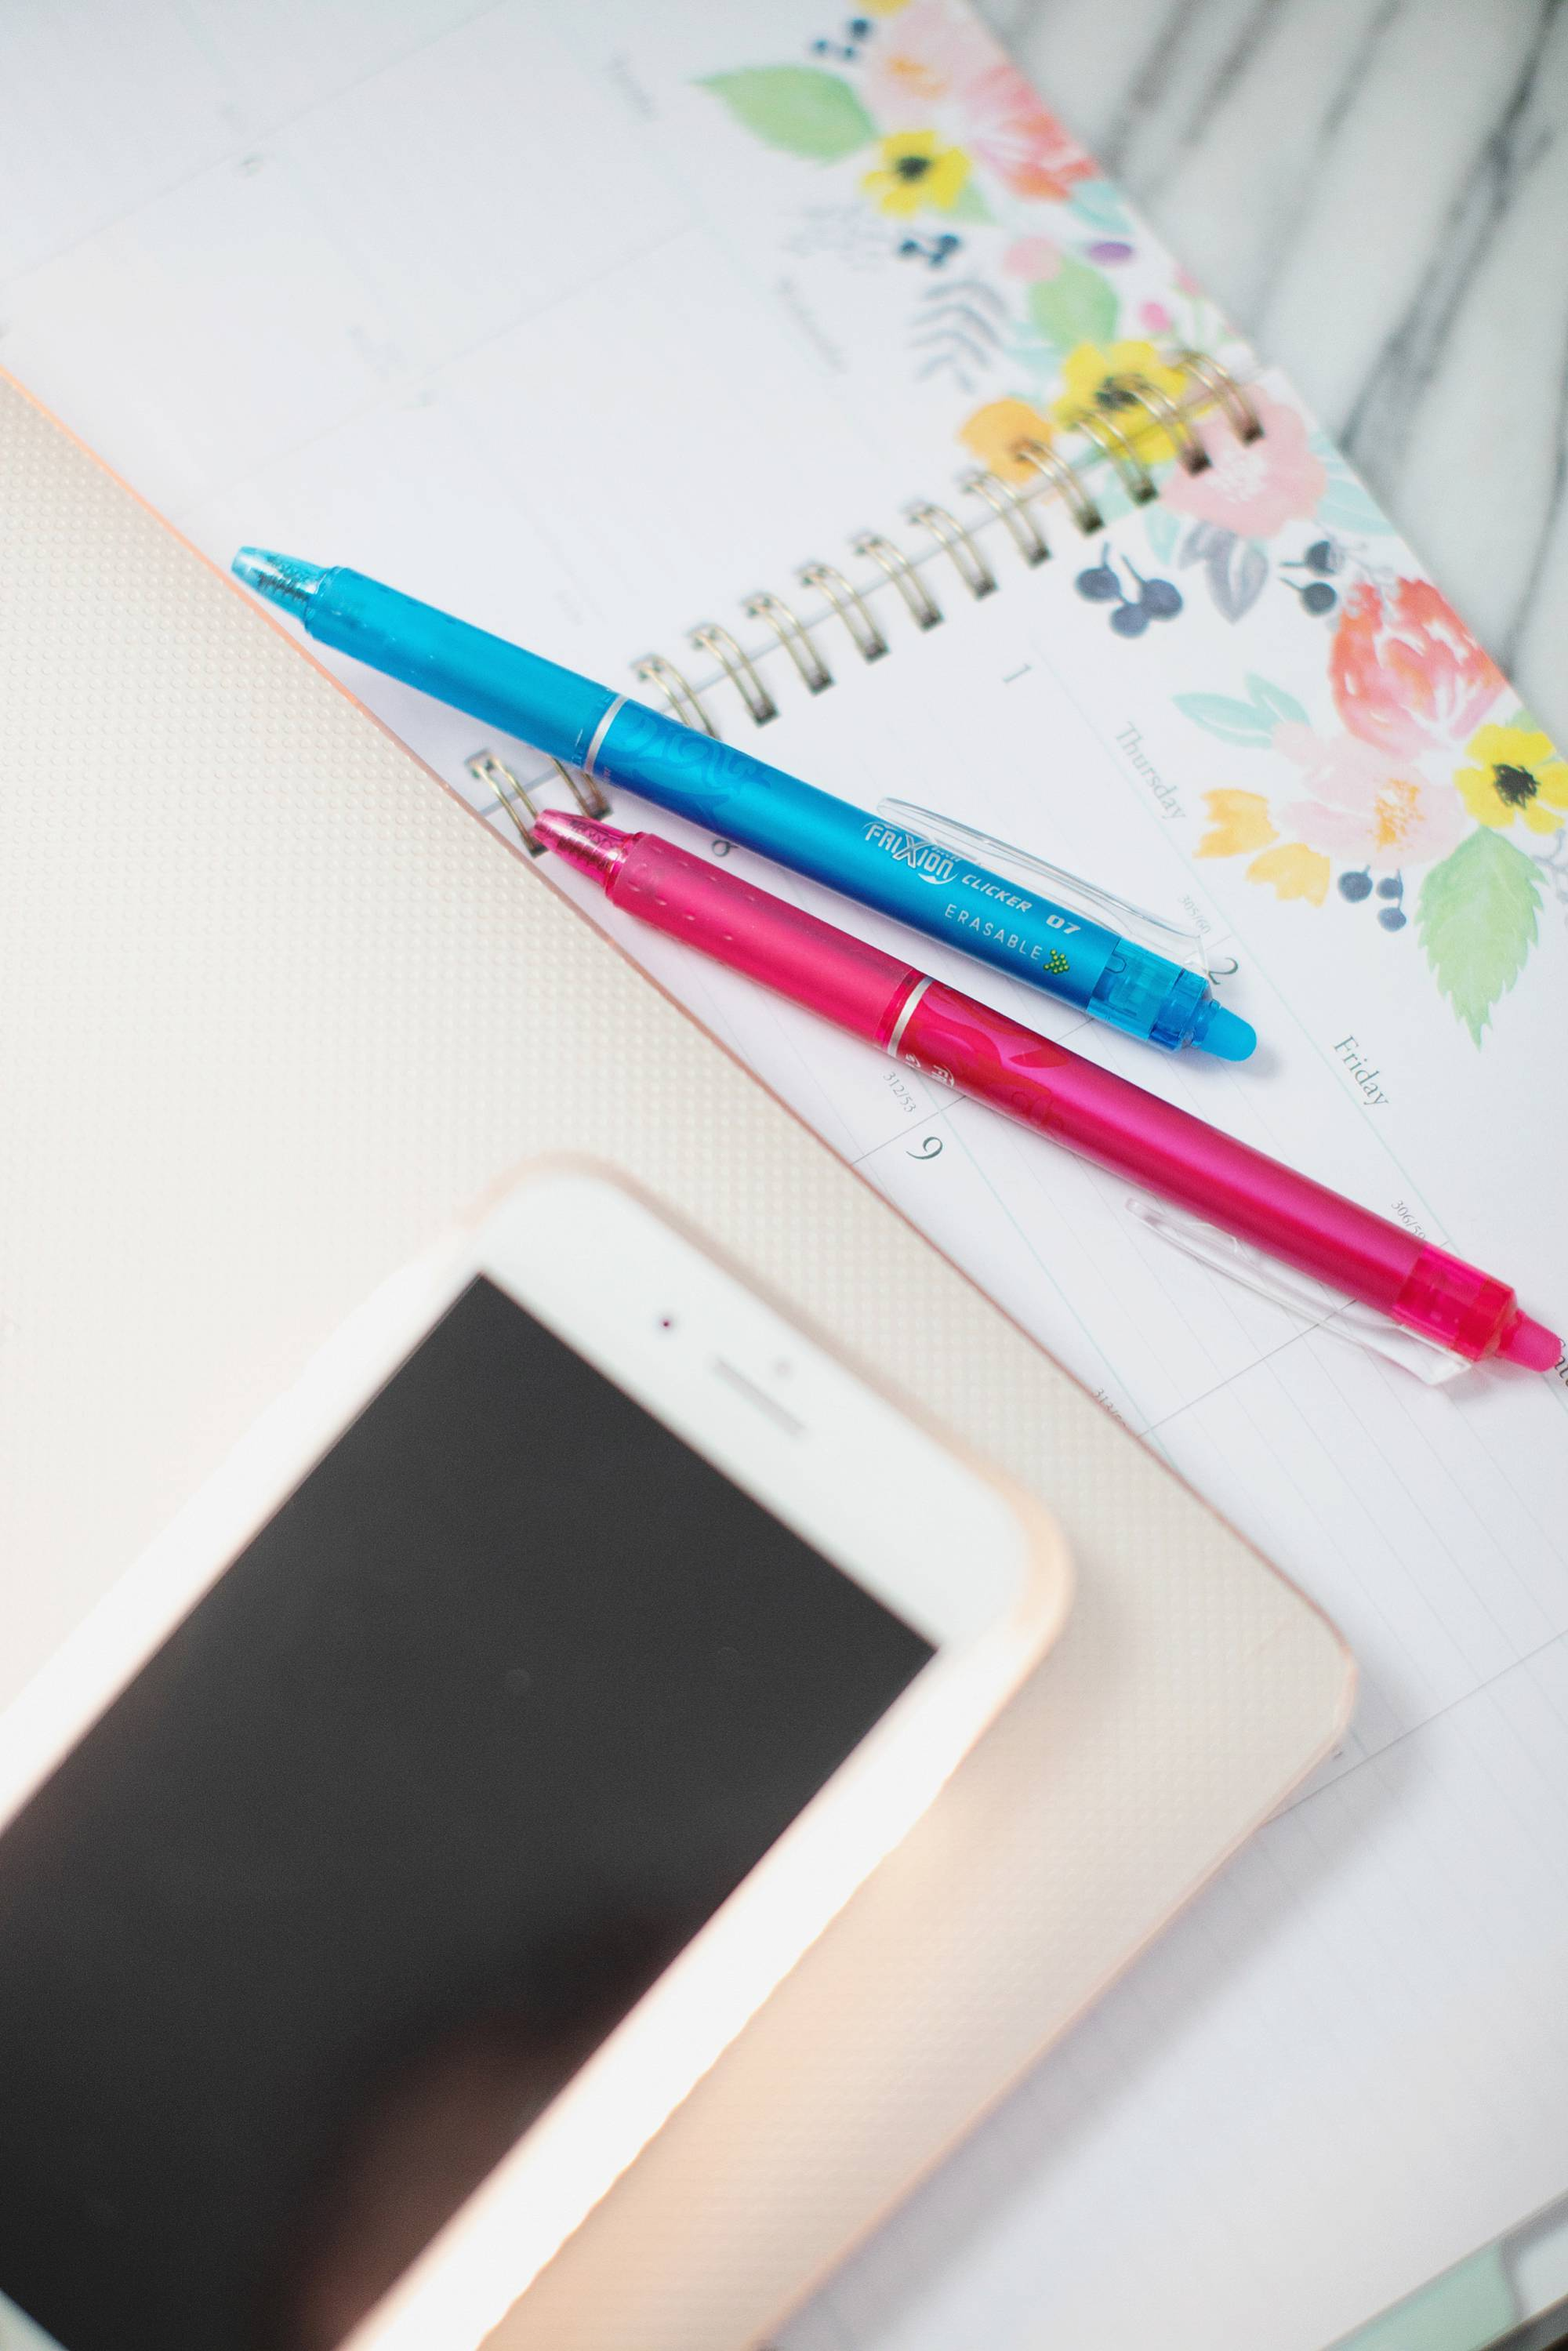 Favorite blogger desktop accessories and things to help with work like lumee cell phone case and mophie, erasable pens and planner